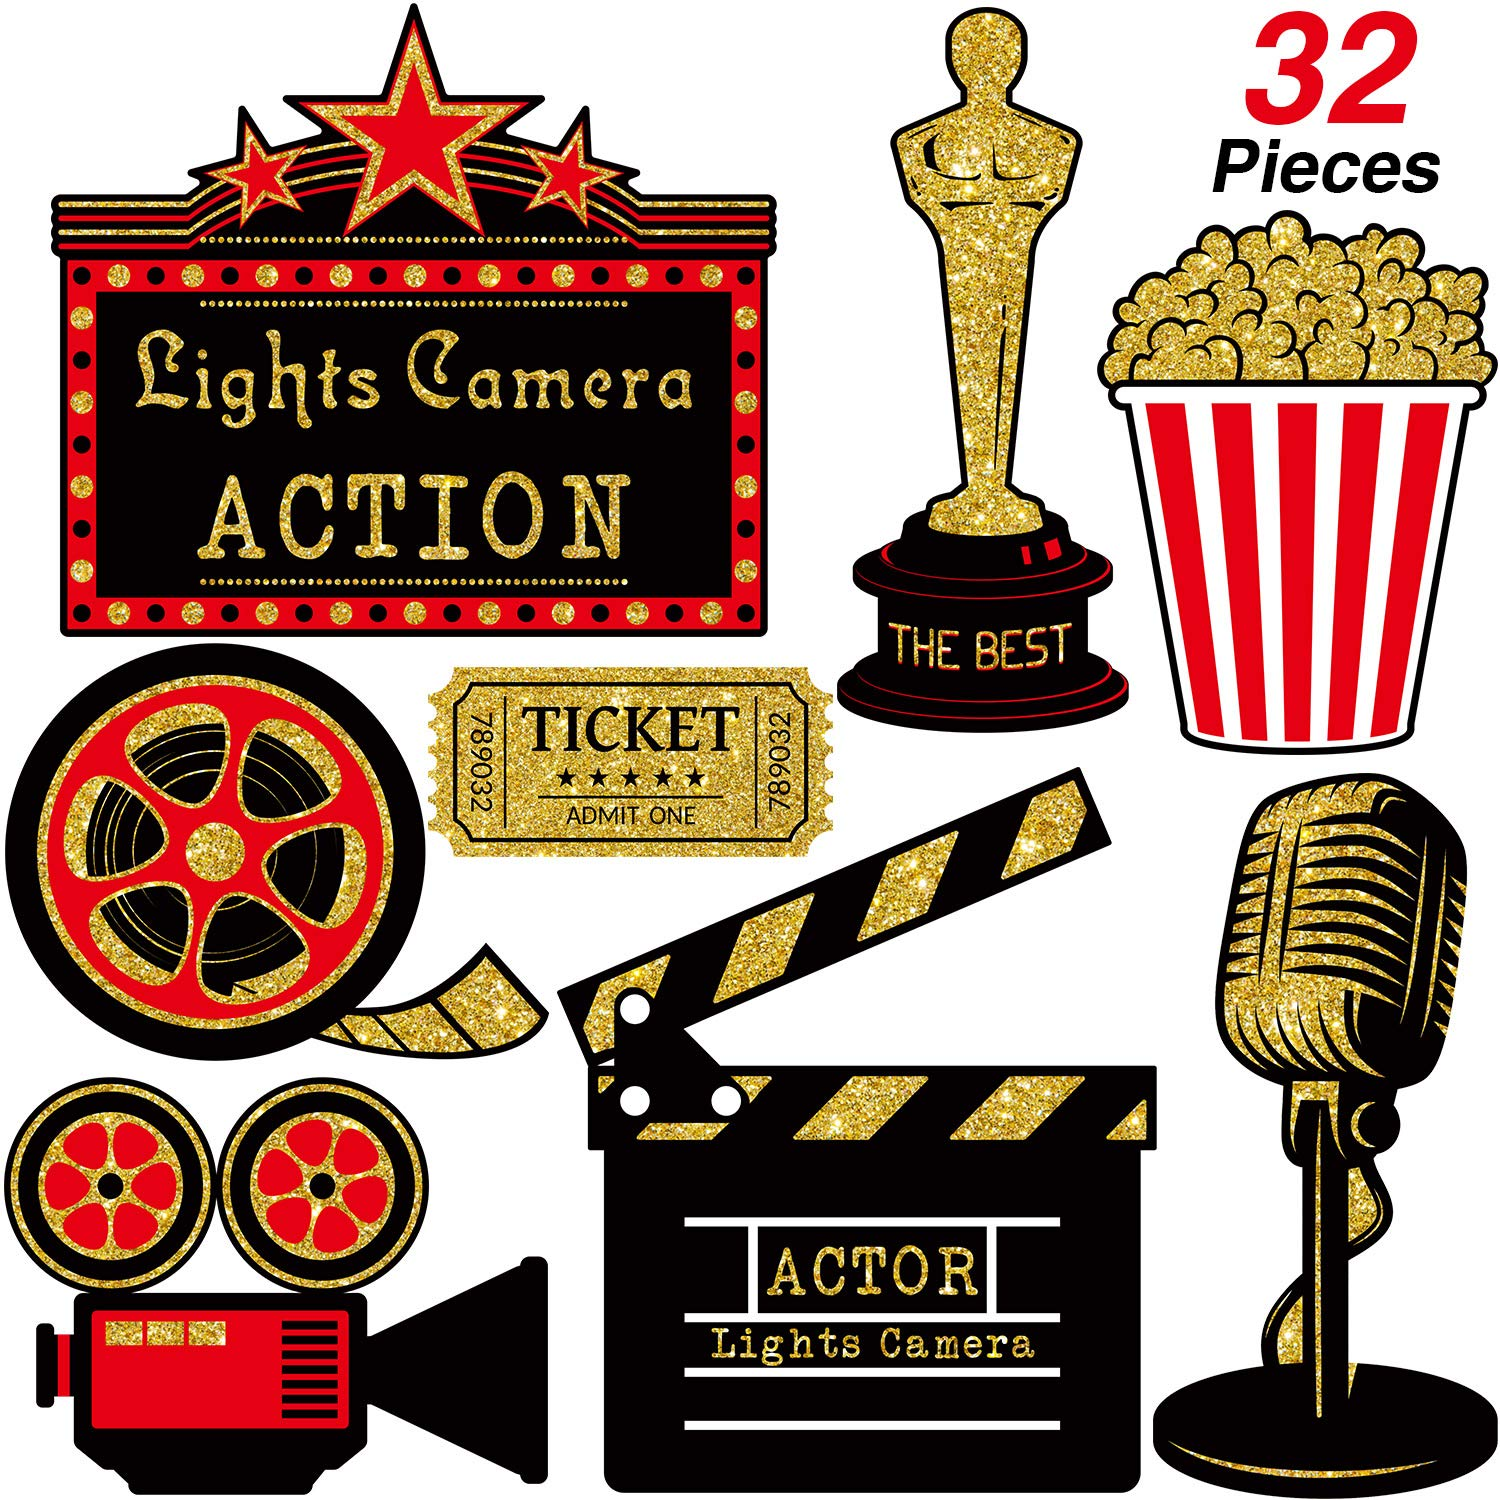 32 Pieces Red Carpet Hollywood Cutouts Hollywood Movie Party Cards Table Toppers Movie Theme Decorations Double-sided Printing Red Golden Black